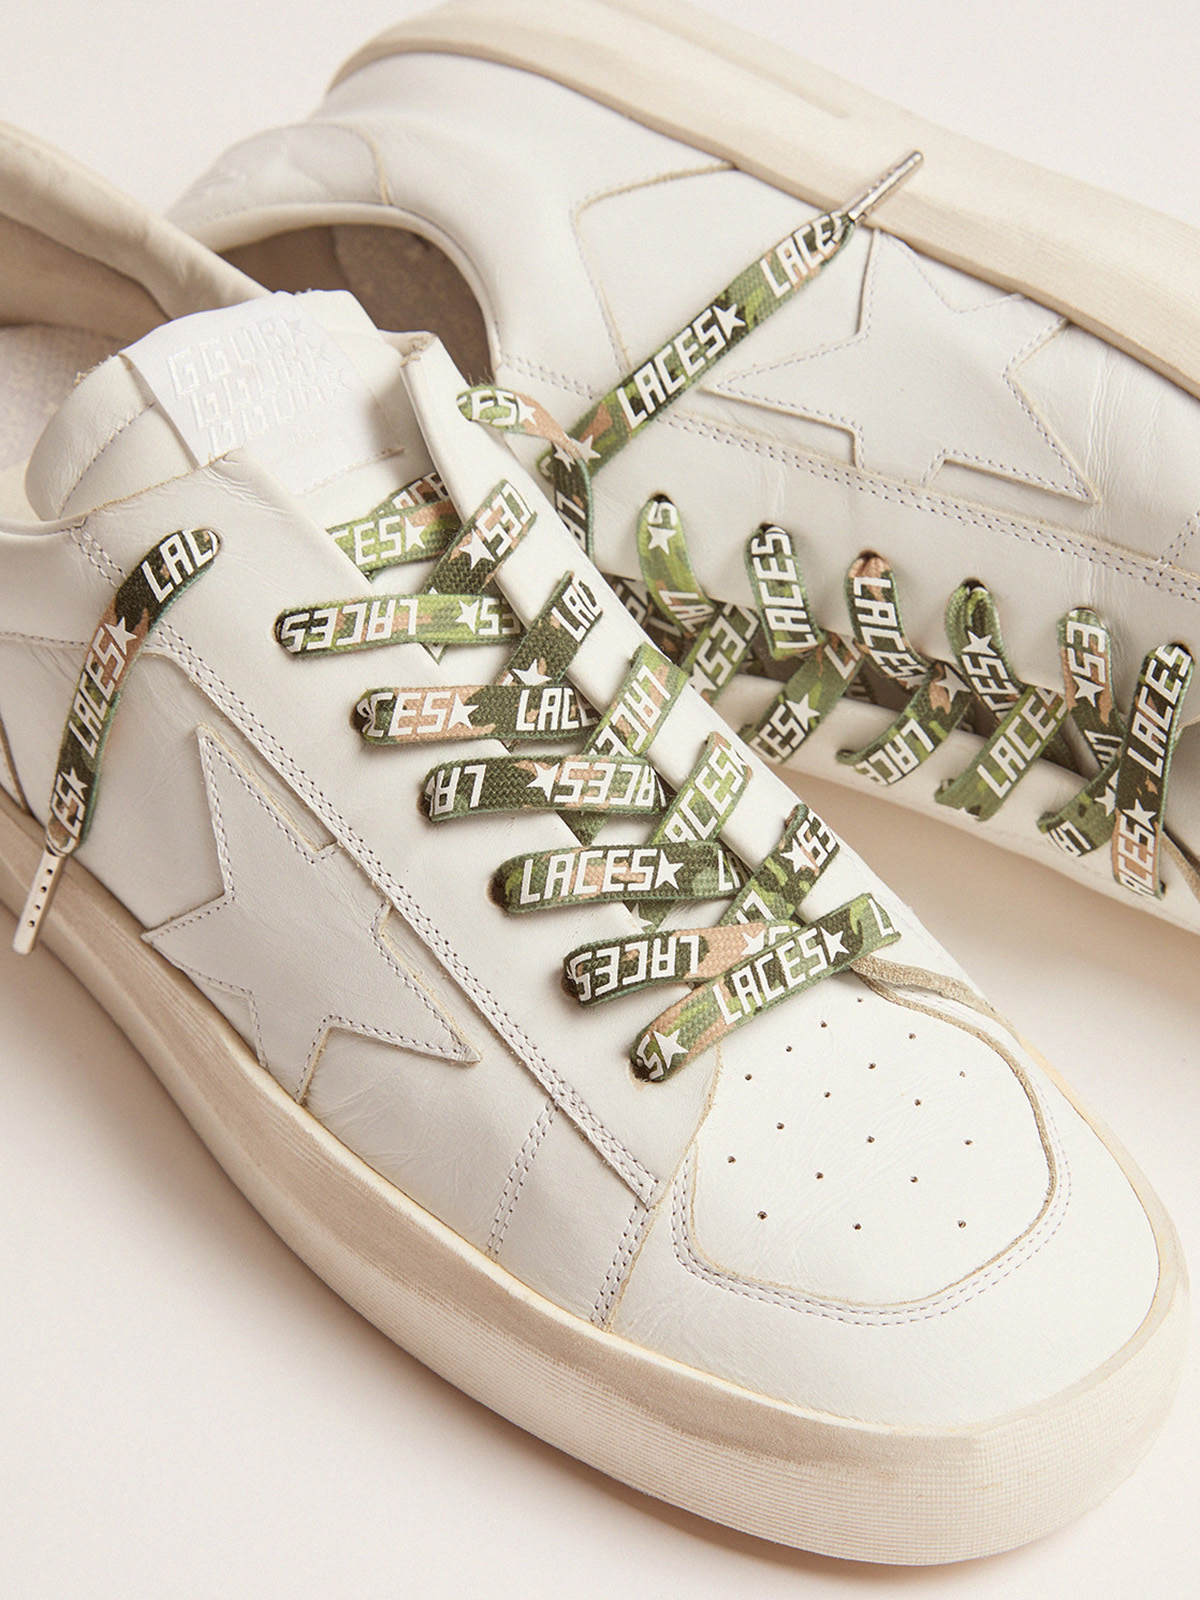 Golden Goose - Women's green camouflage laces with white laces print in